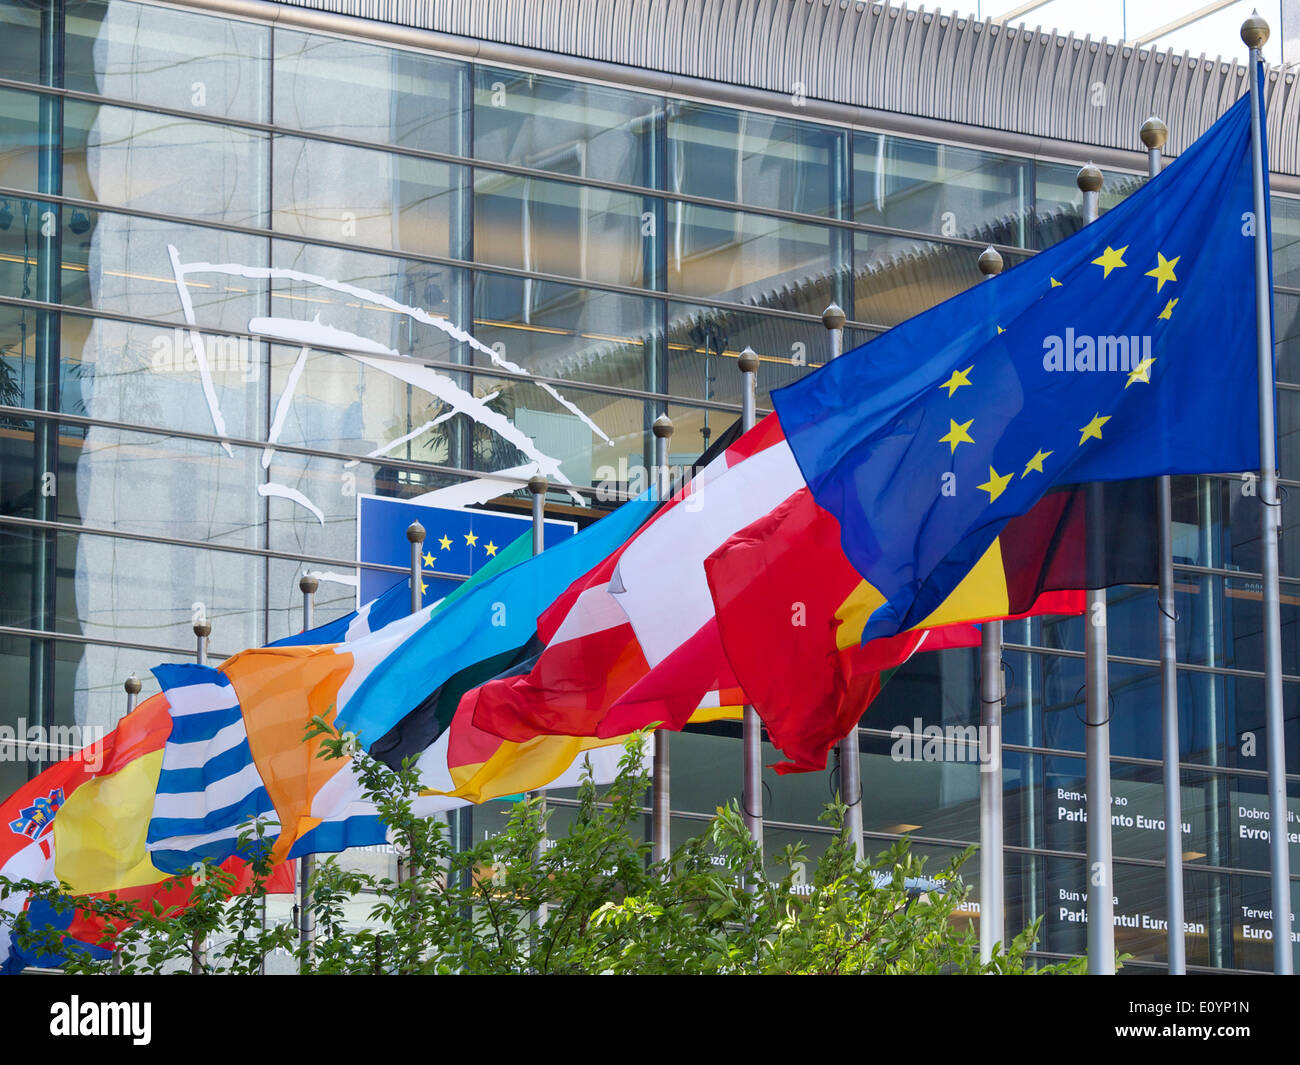 nationalRow of various European national flags at the EU parliament building in Brussels, Belgium - Stock Image